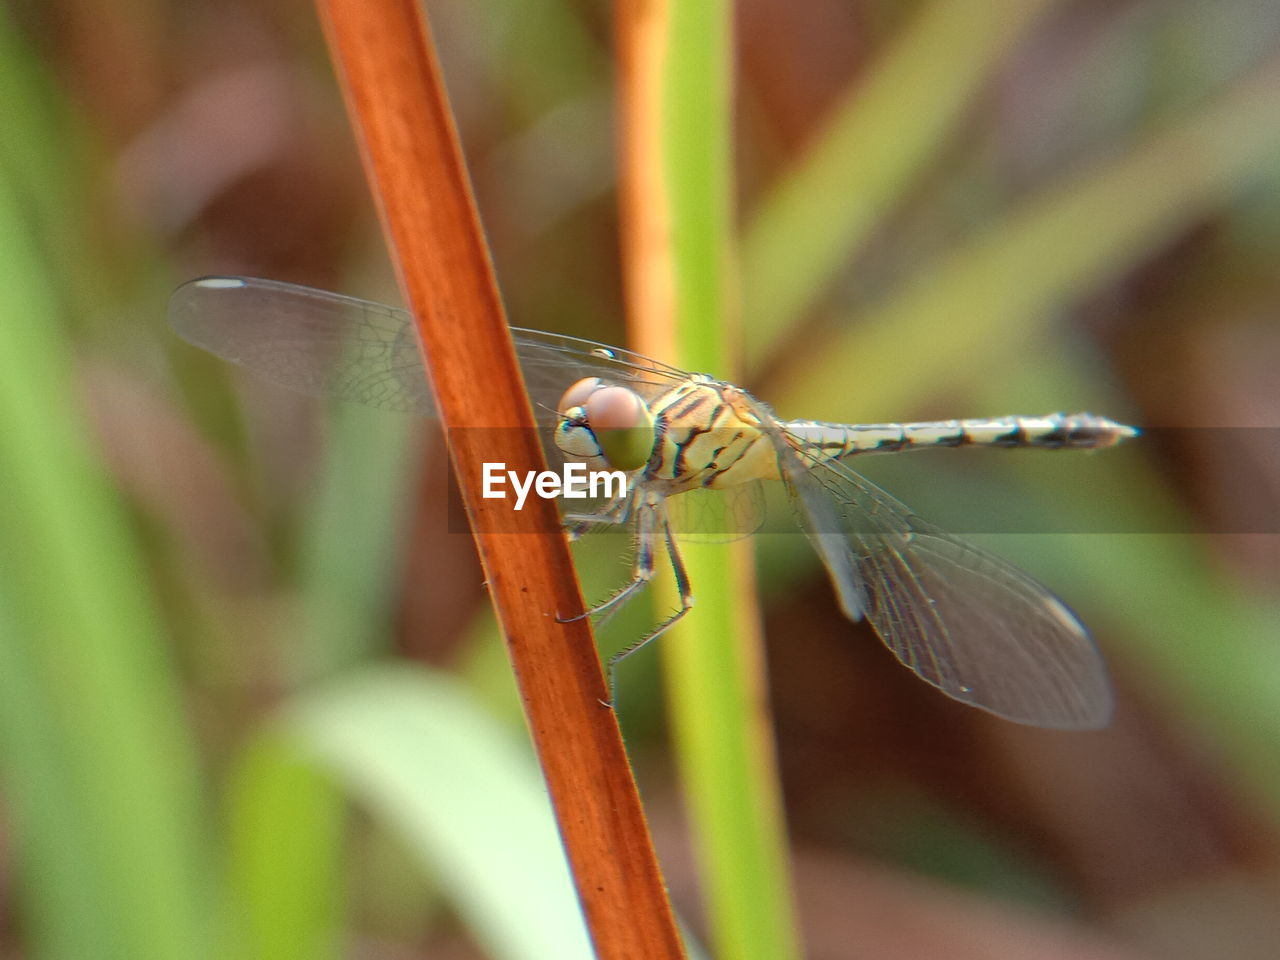 animals in the wild, invertebrate, animal wildlife, insect, animal themes, one animal, animal, plant, close-up, day, no people, nature, green color, selective focus, animal wing, growth, focus on foreground, dragonfly, zoology, outdoors, blade of grass